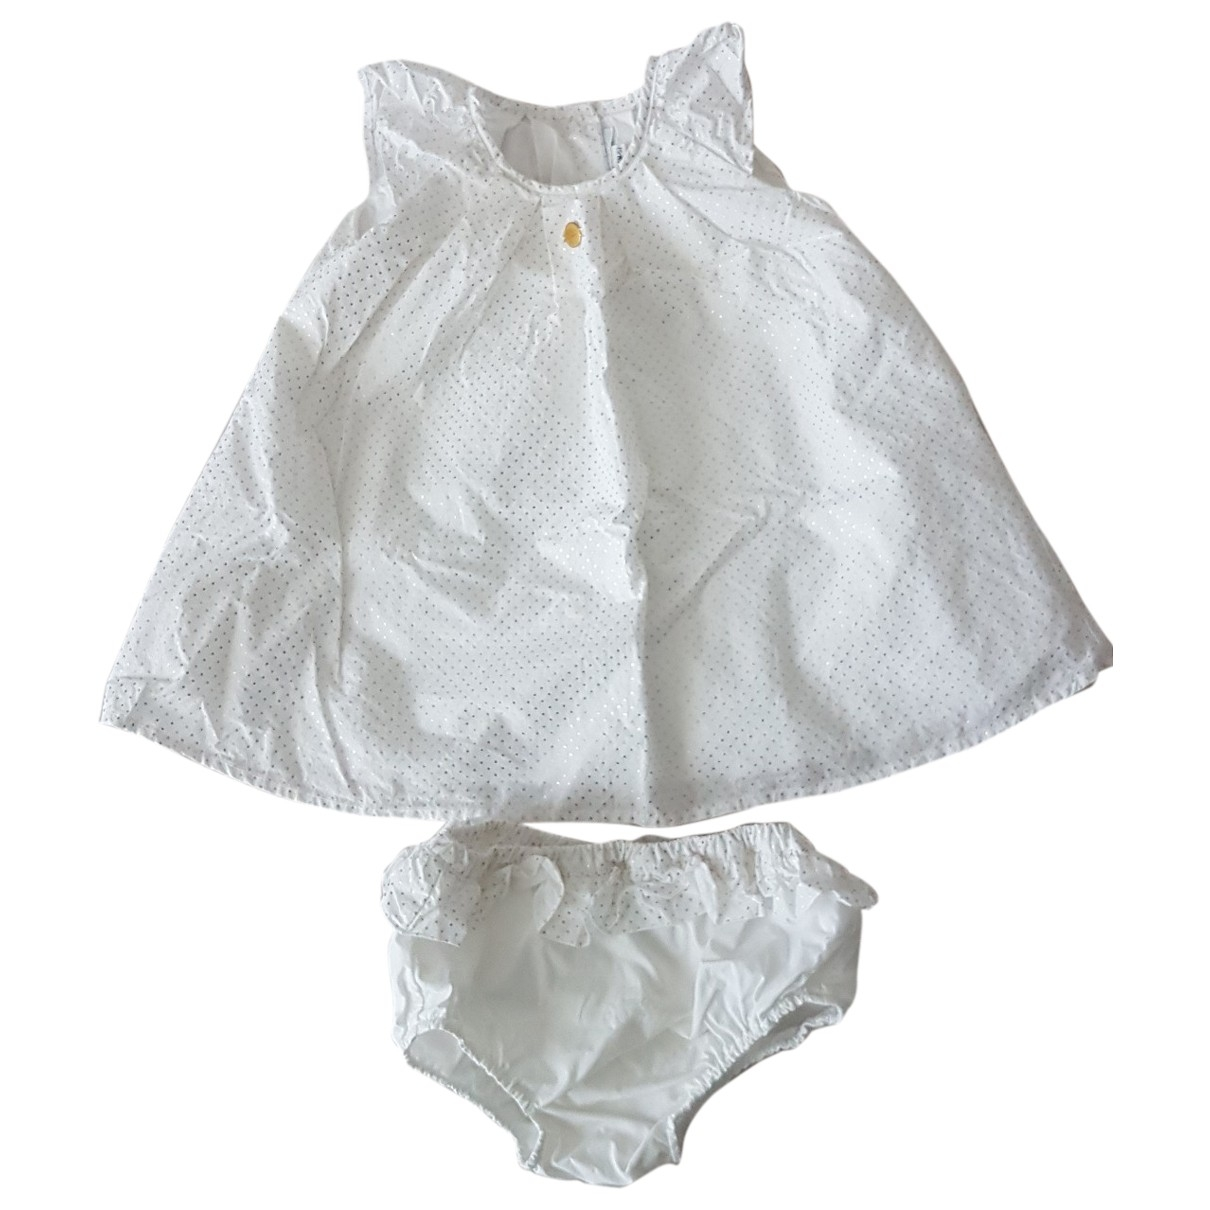 Boss \N White Cotton dress for Kids 6 months - up to 67cm FR